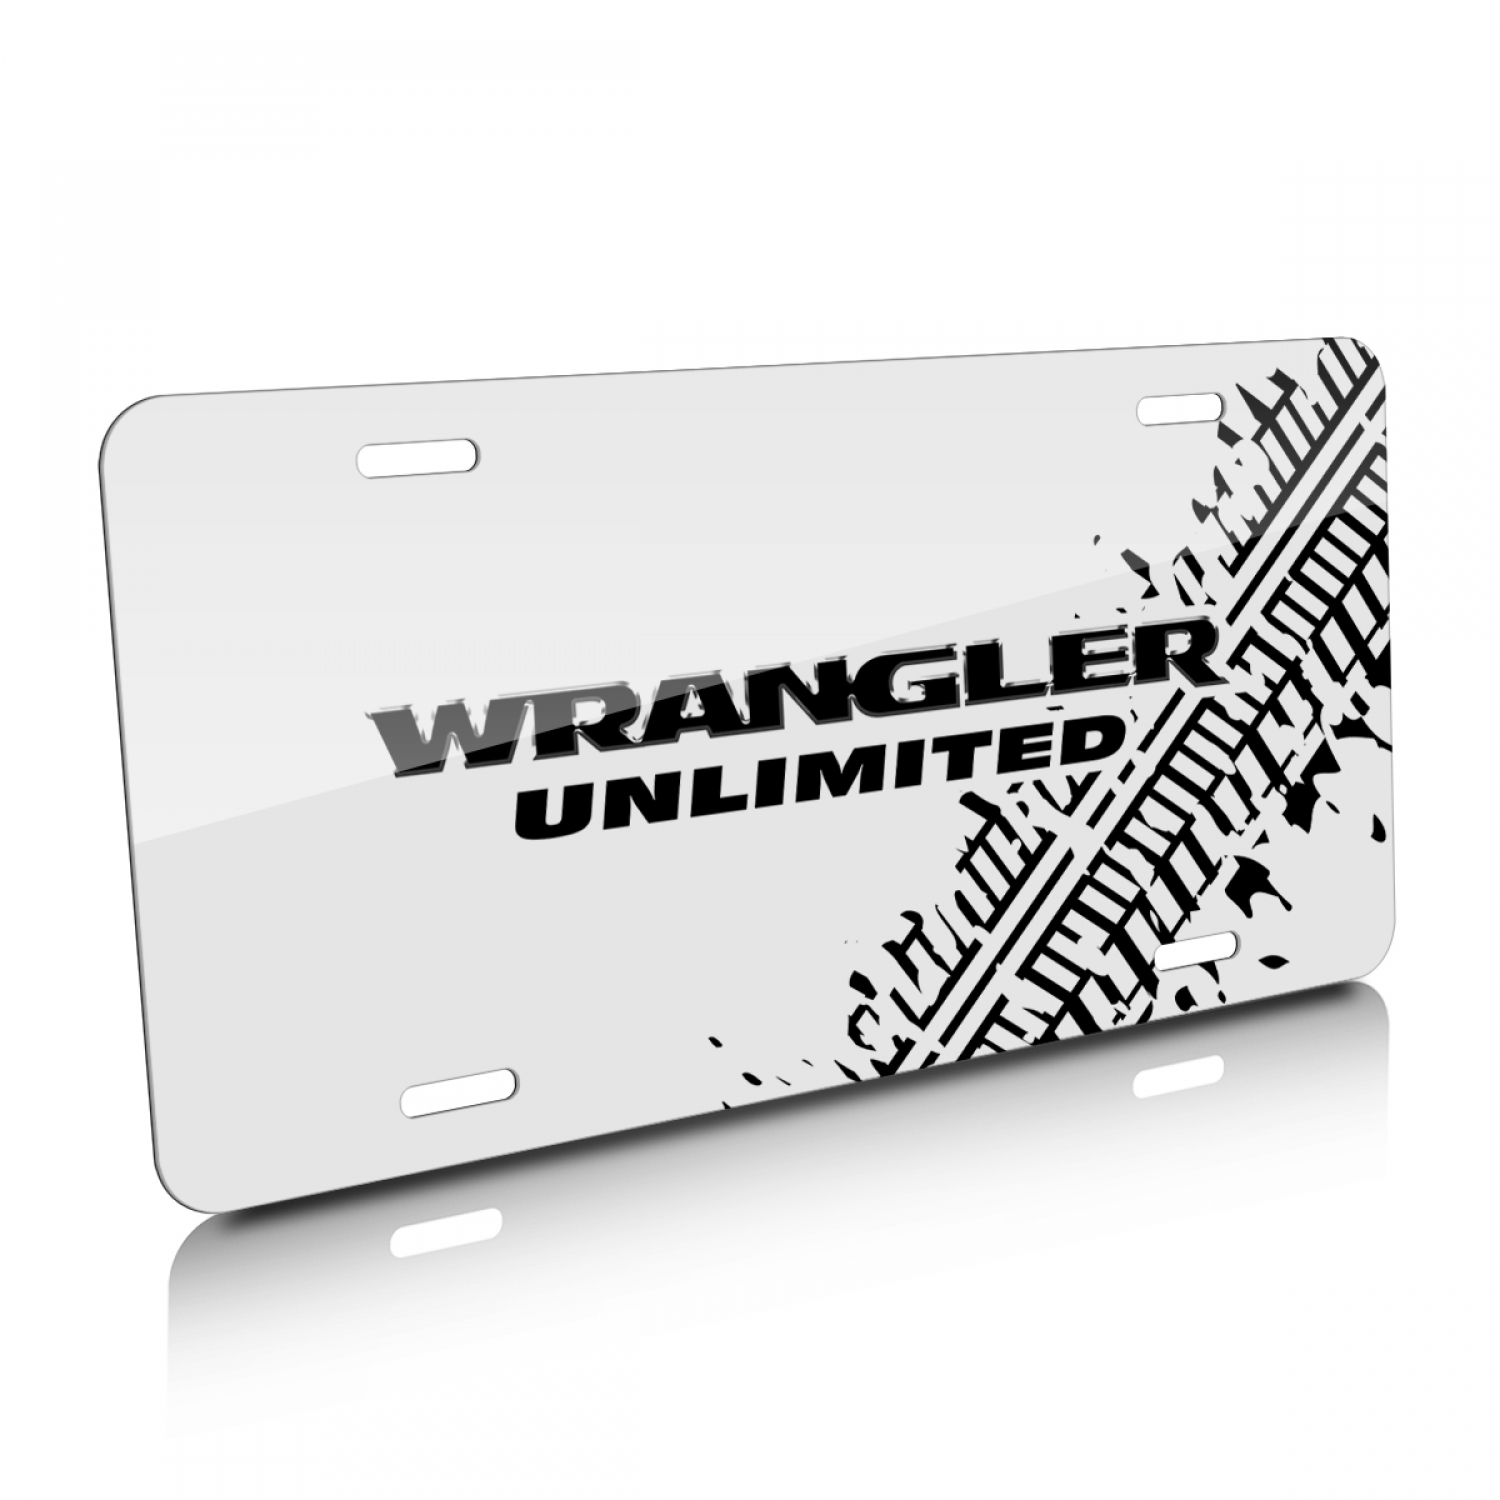 Jeep Wrangler Unlimited Tire Mark Graphic White Aluminum License Plate